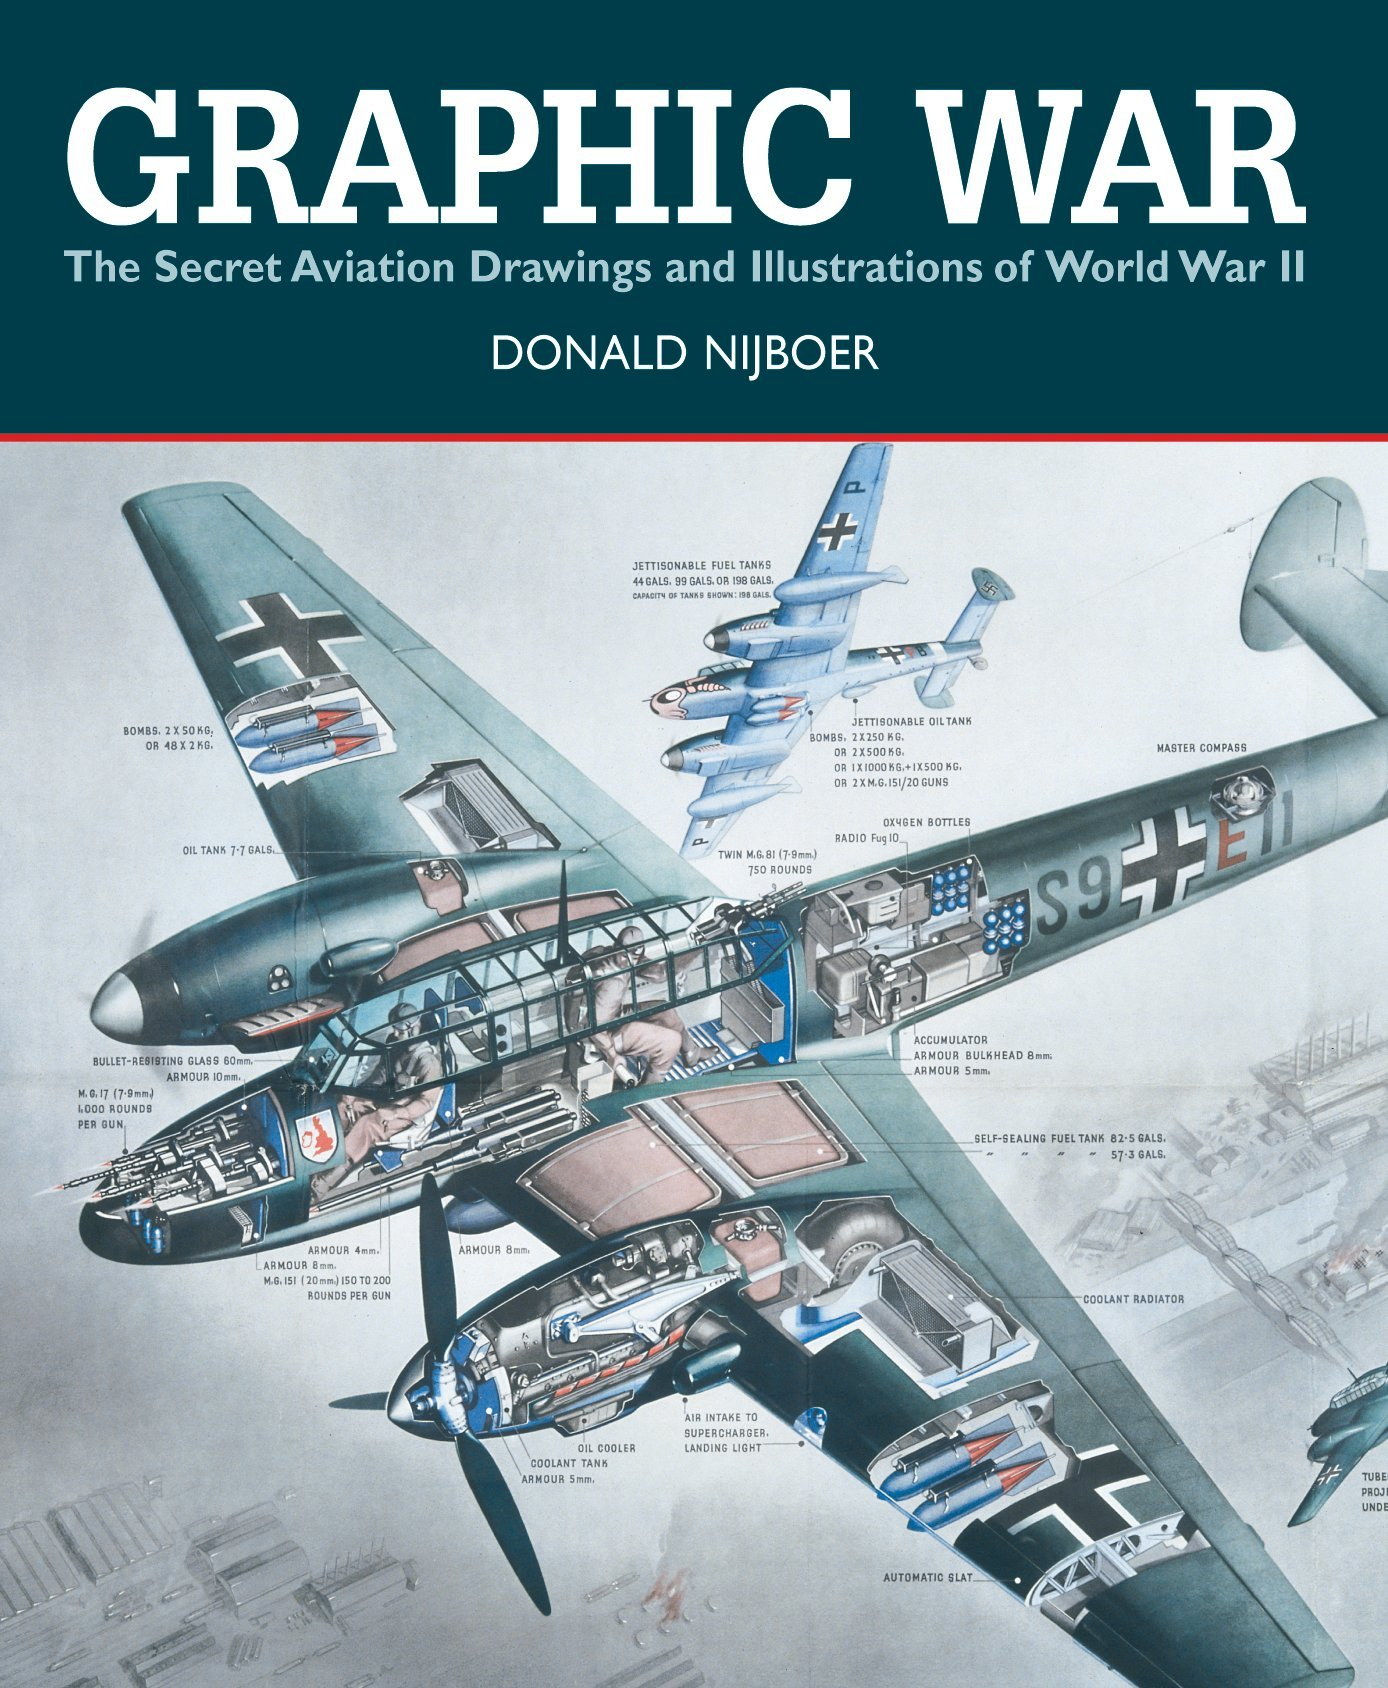 graphic-war-the-secret-aviation-drawings-and-illustrations-of-world-war-ii